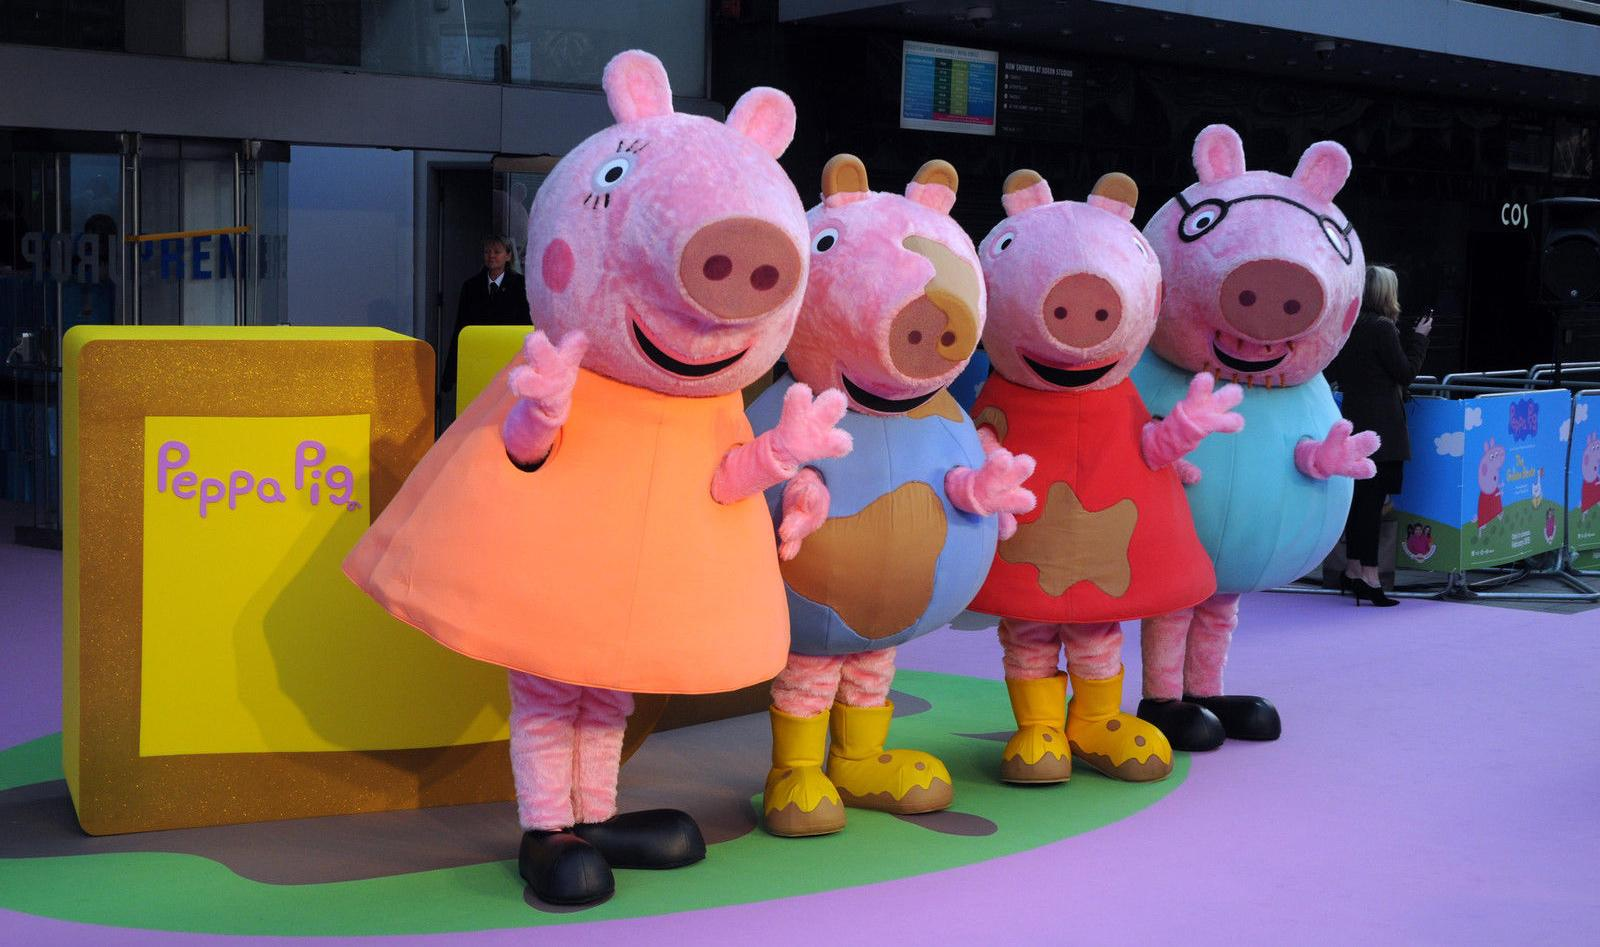 Peppa Pig Live! Tickets